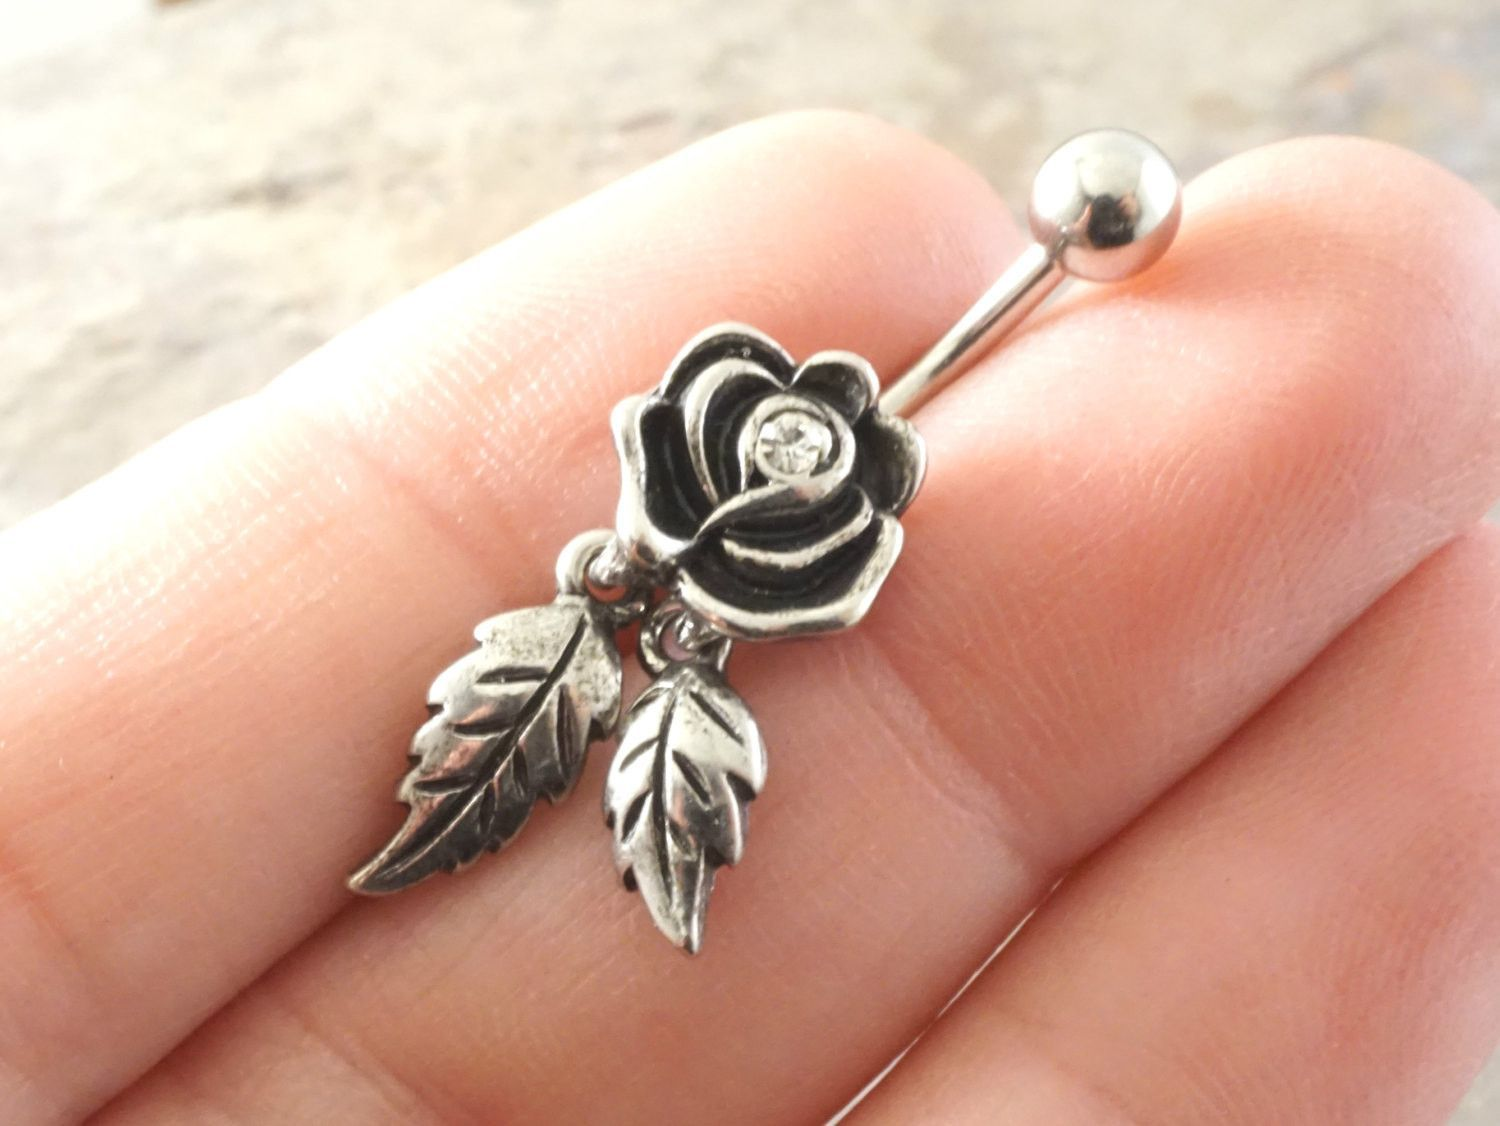 Belly button piercing scar  Rose flower belly button jewelry ring with dangling leaves Made